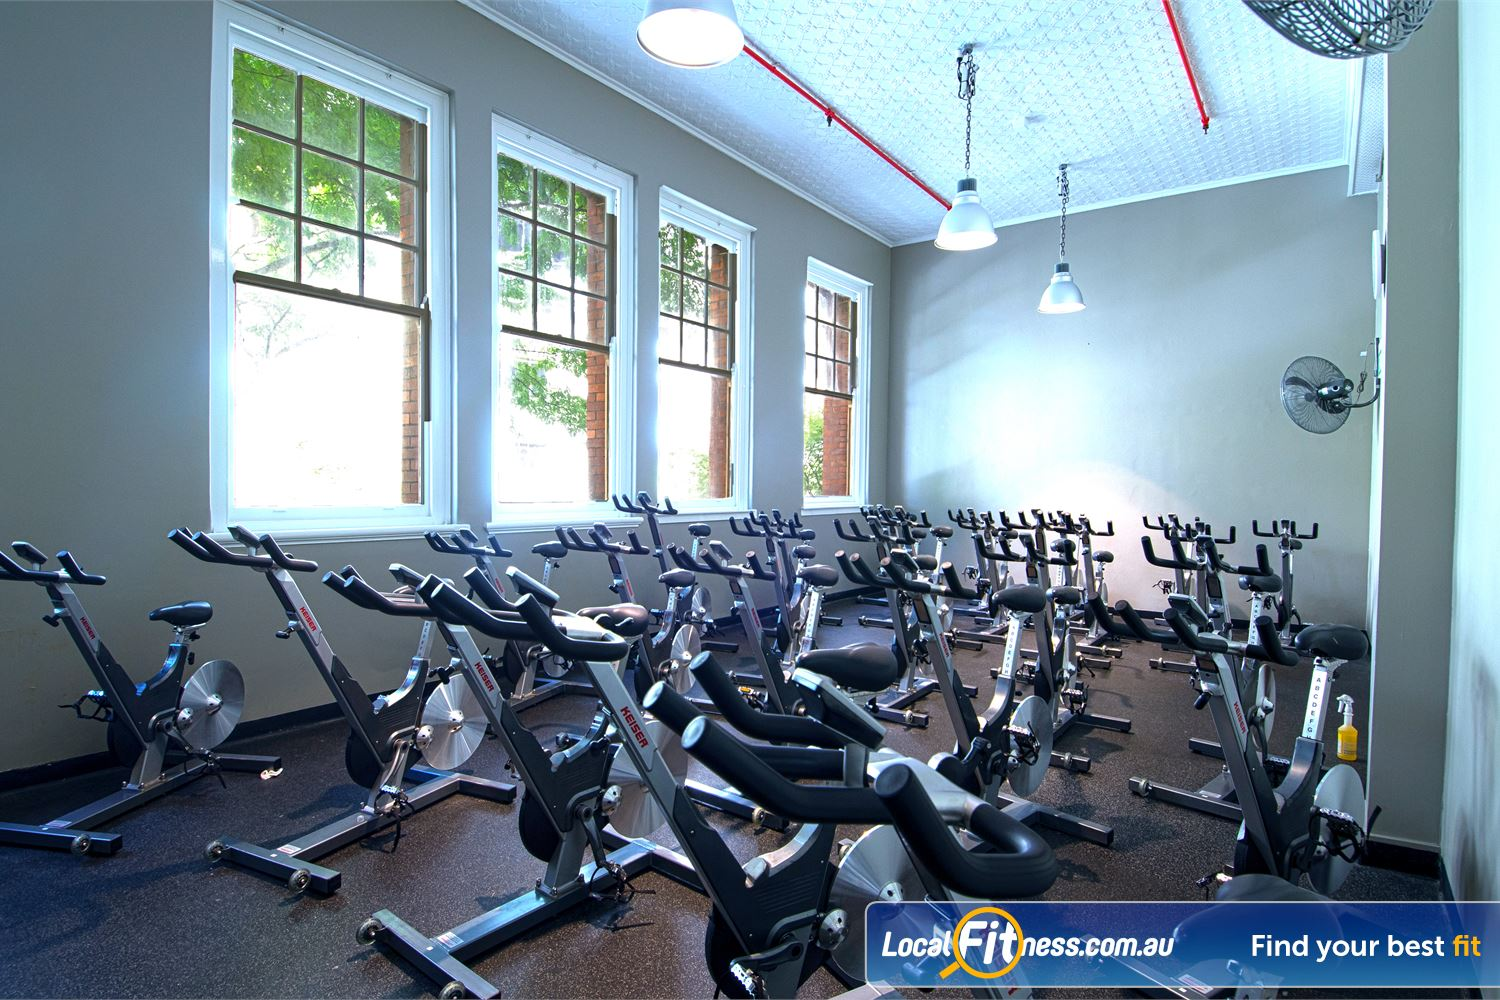 Goodlife Health Clubs Edward St Near City East Dedicated Brisbane spin cycle studio.